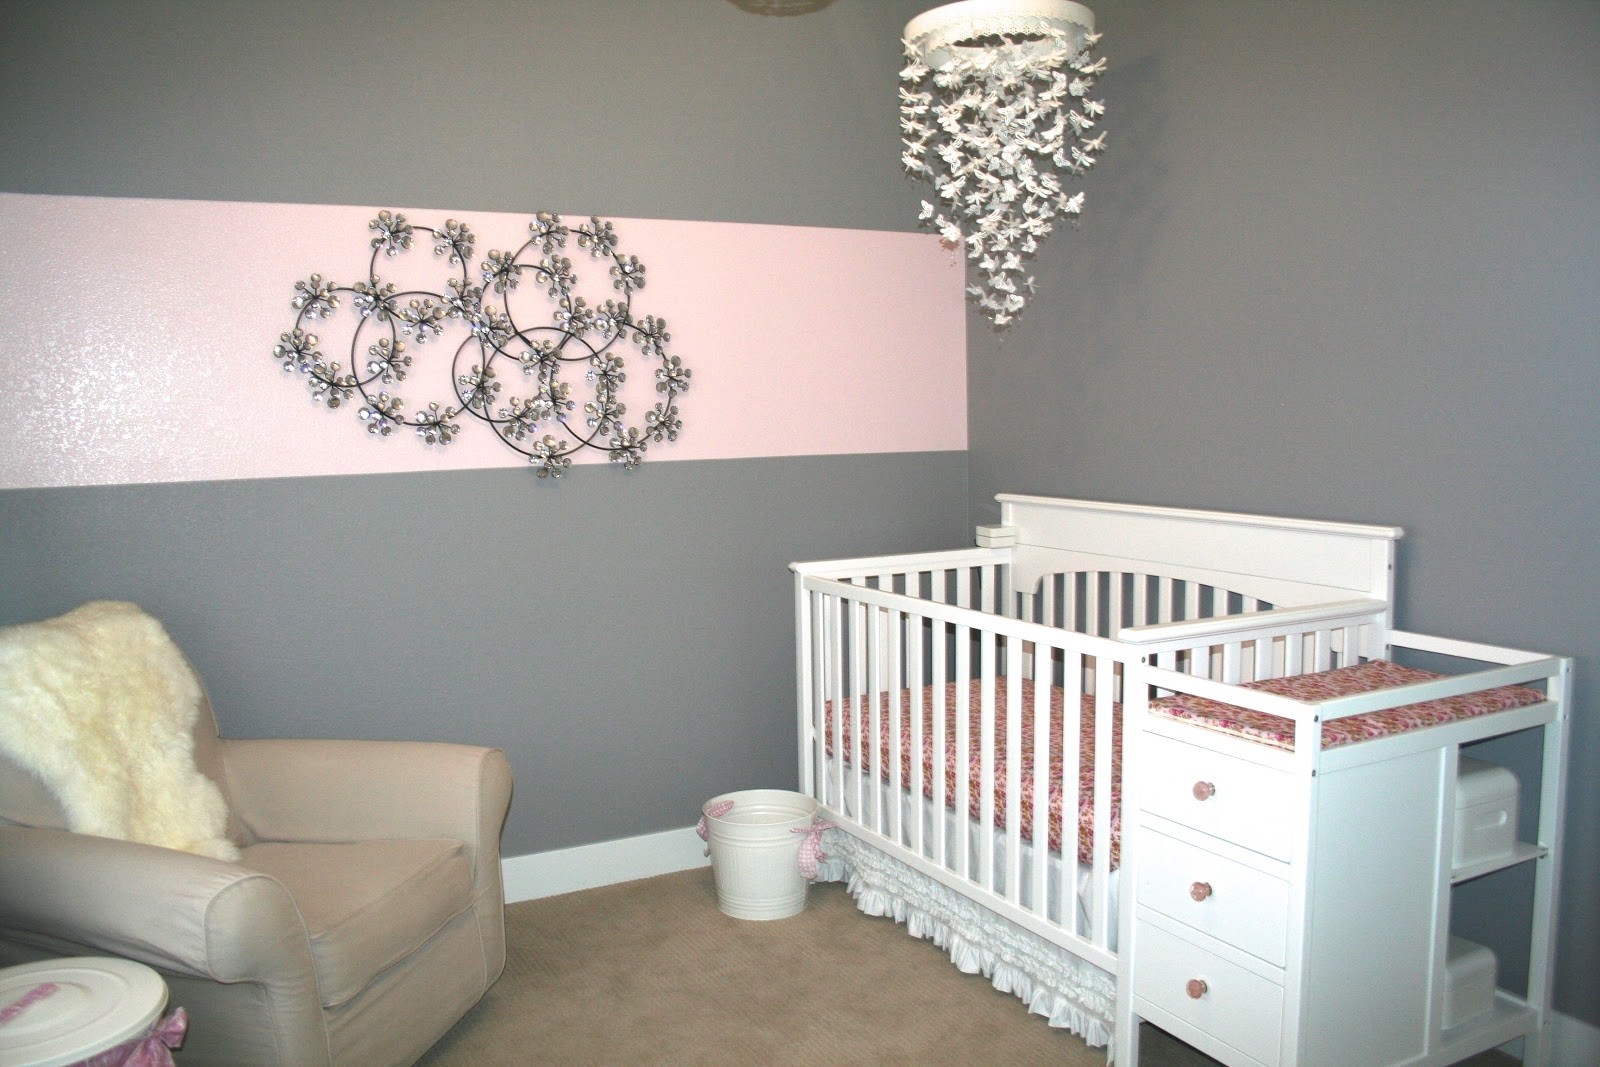 Superb Chandeliers For Ba Room 16 Chandeliers For Ba Room Inside Cheap Chandeliers For Baby Girl Room (Image 21 of 25)